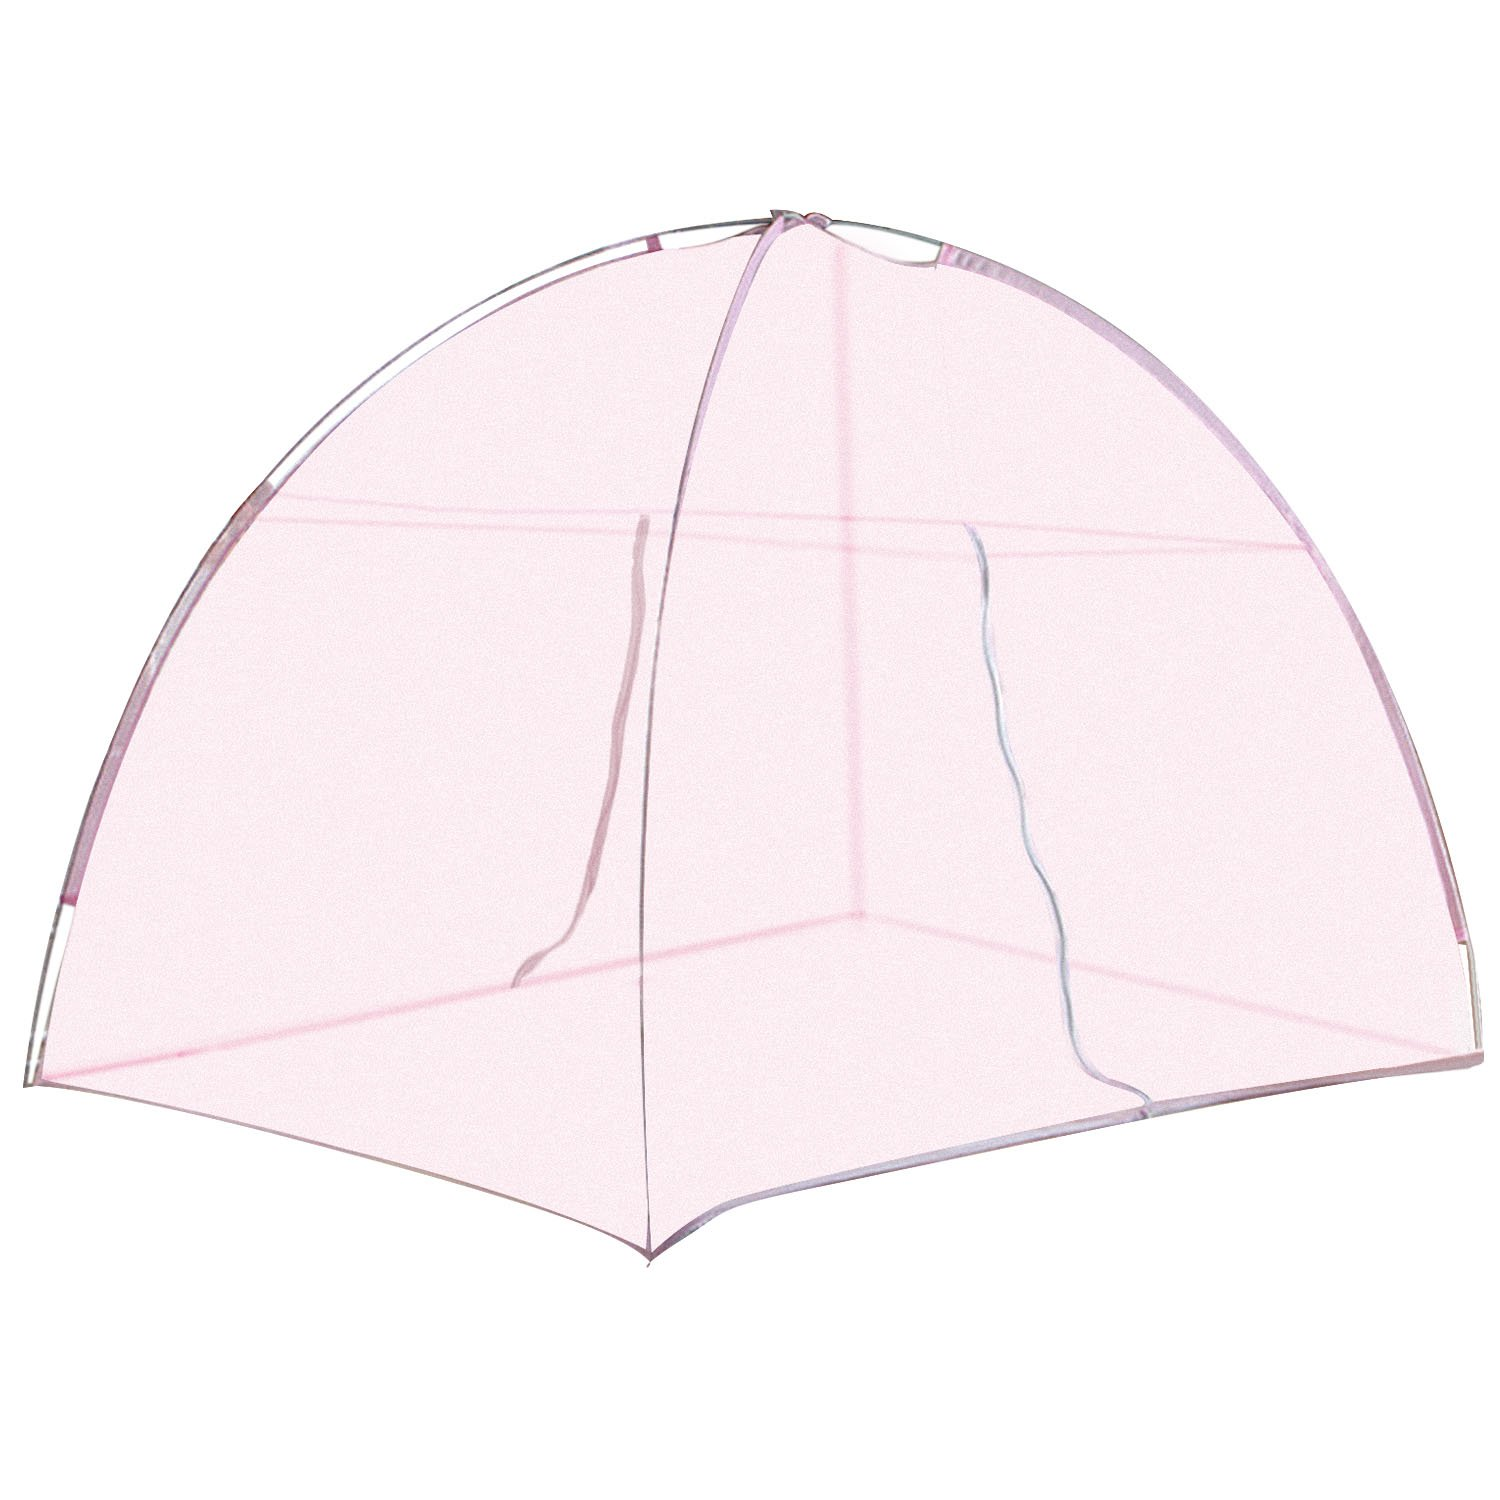 Mosquito Net Tent, Portable Folding Summer Sleeping Bedroom Anti Mosquito Netting with 2-Way Zipper for Beds Home Bedroom Camping 60 x 79 Inch Pink Migavan